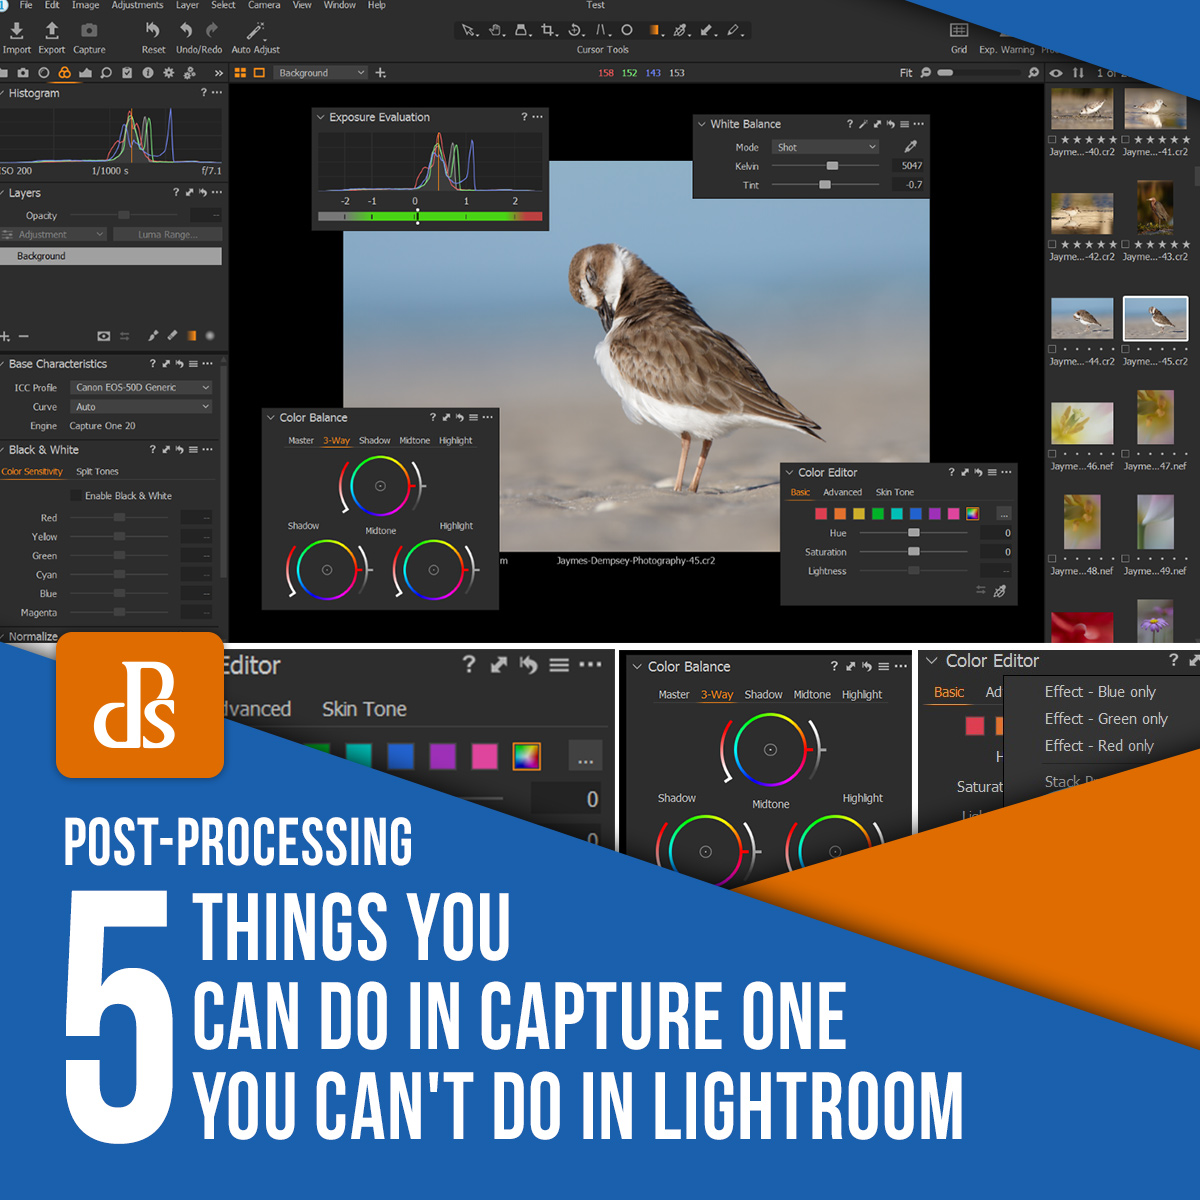 5 Things You Can Do in Capture One You Can't Do in Lightroom